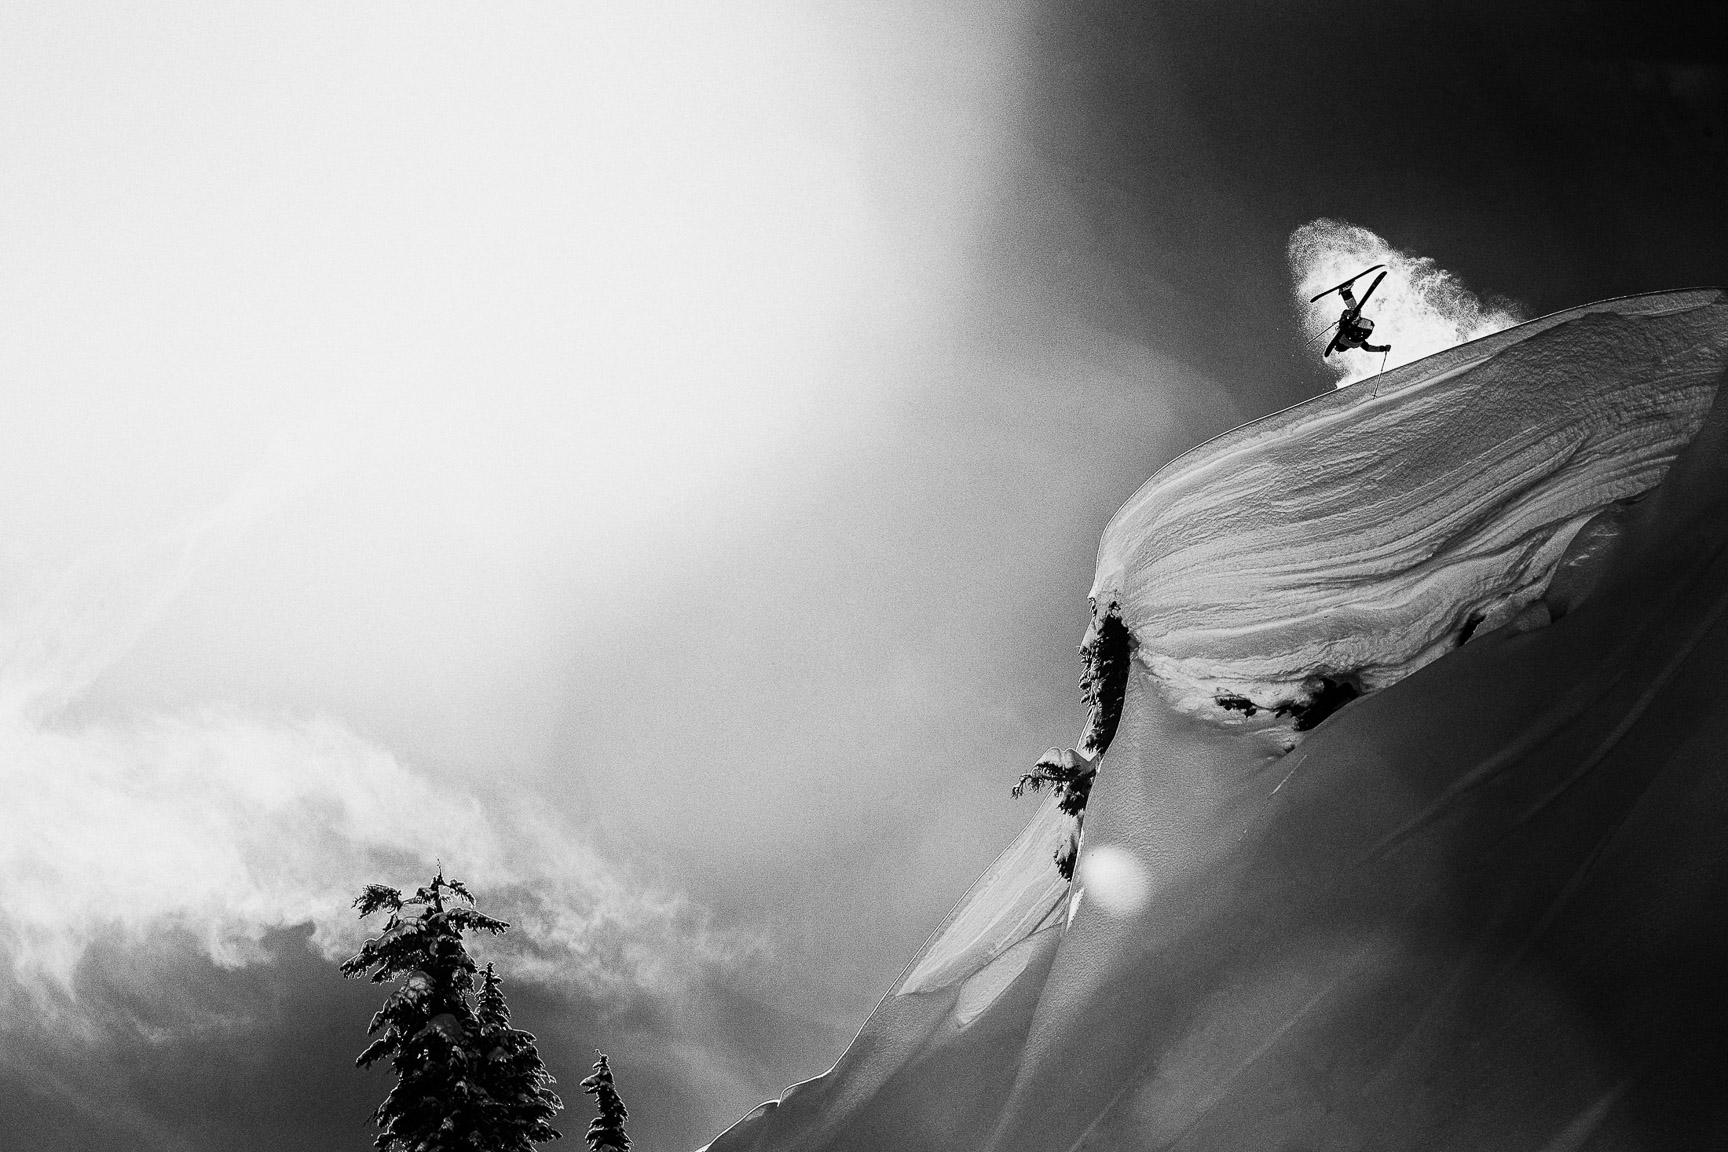 Lucas Wachs, Mt. Baker, Washington